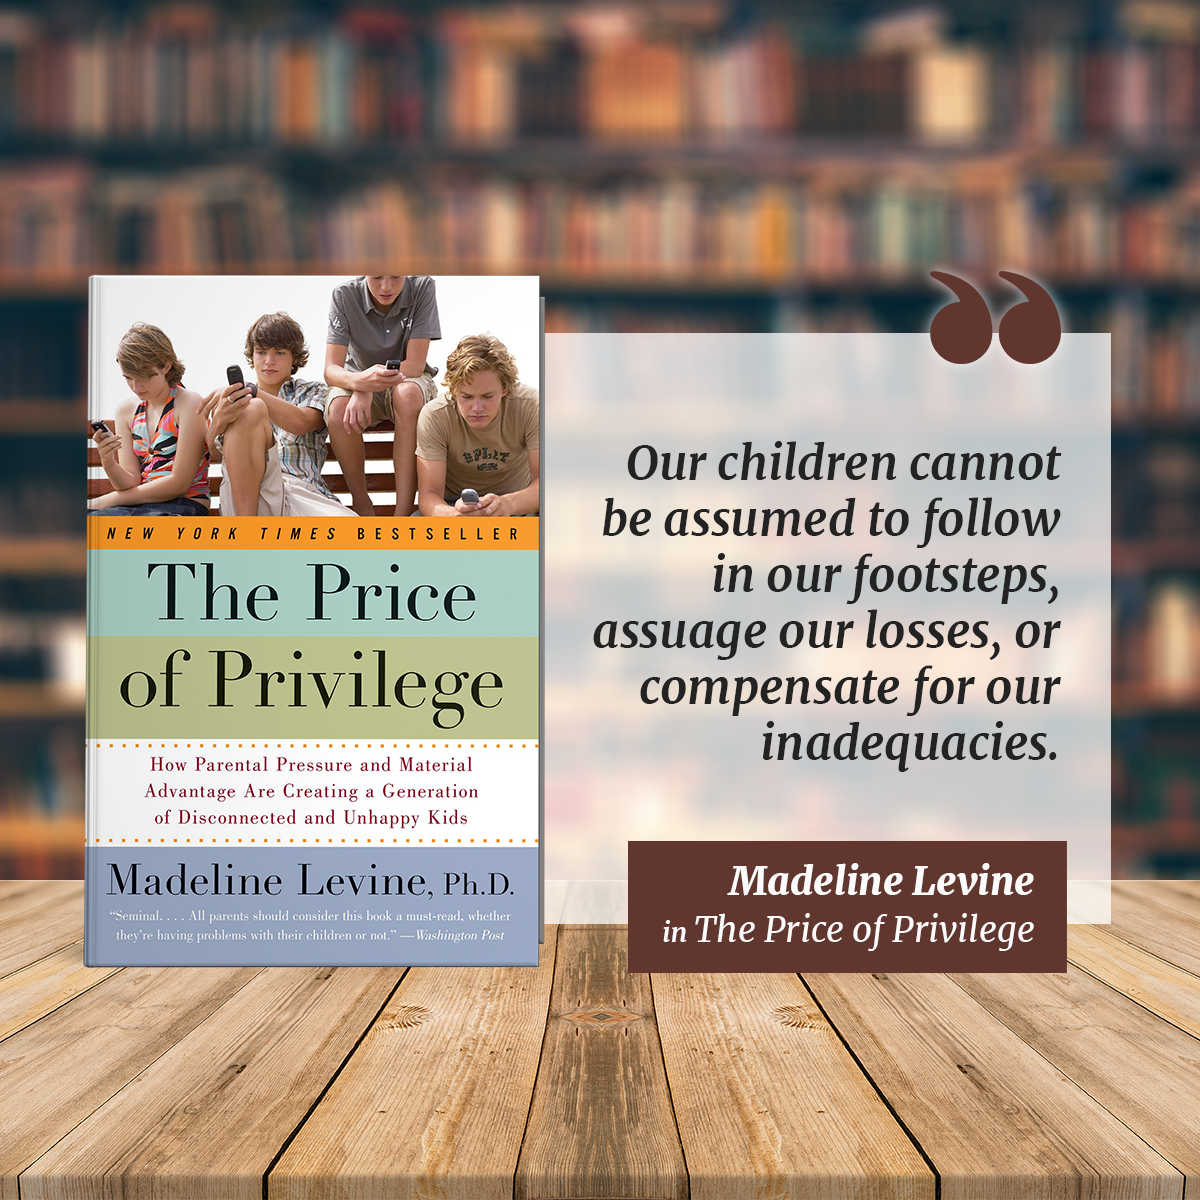 Lessons from Books: How Parental Privilege Can Adversely Impact Children